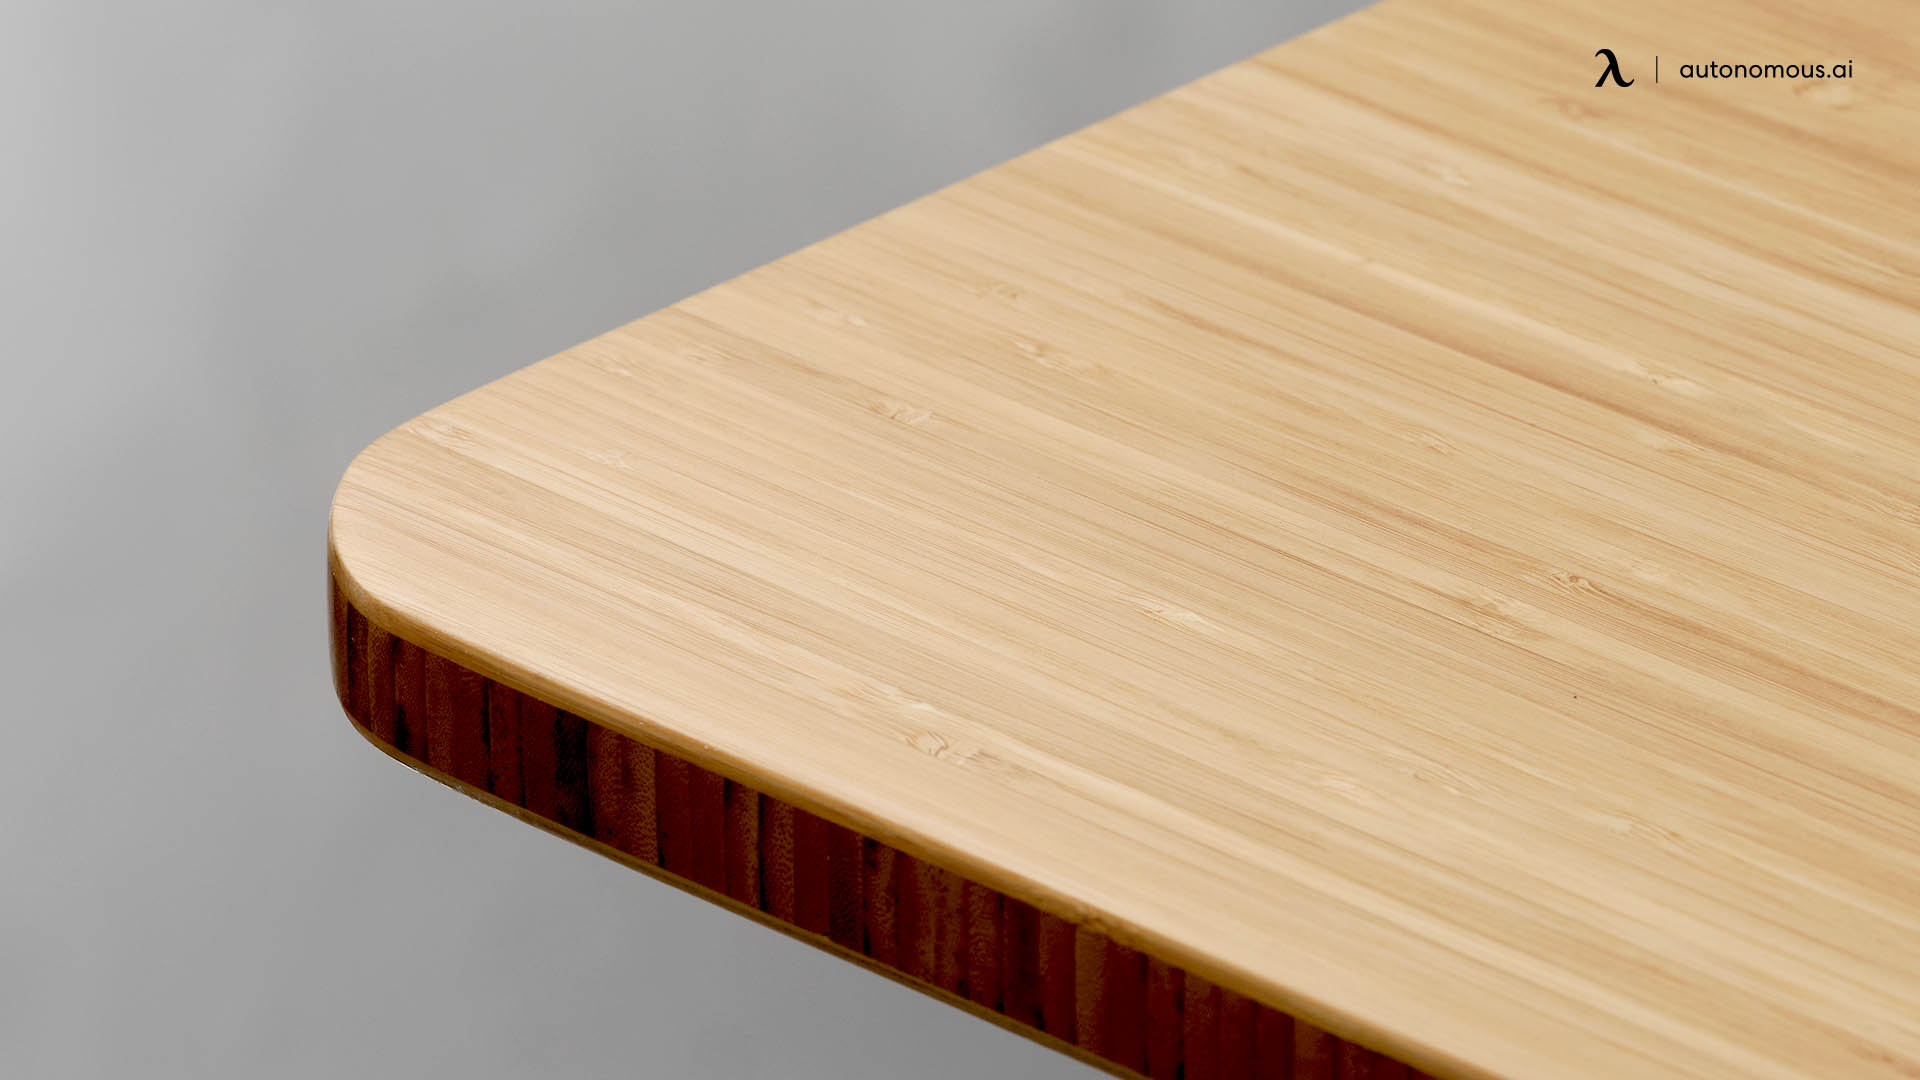 Why Are Bamboo Desks a Good Option for You?